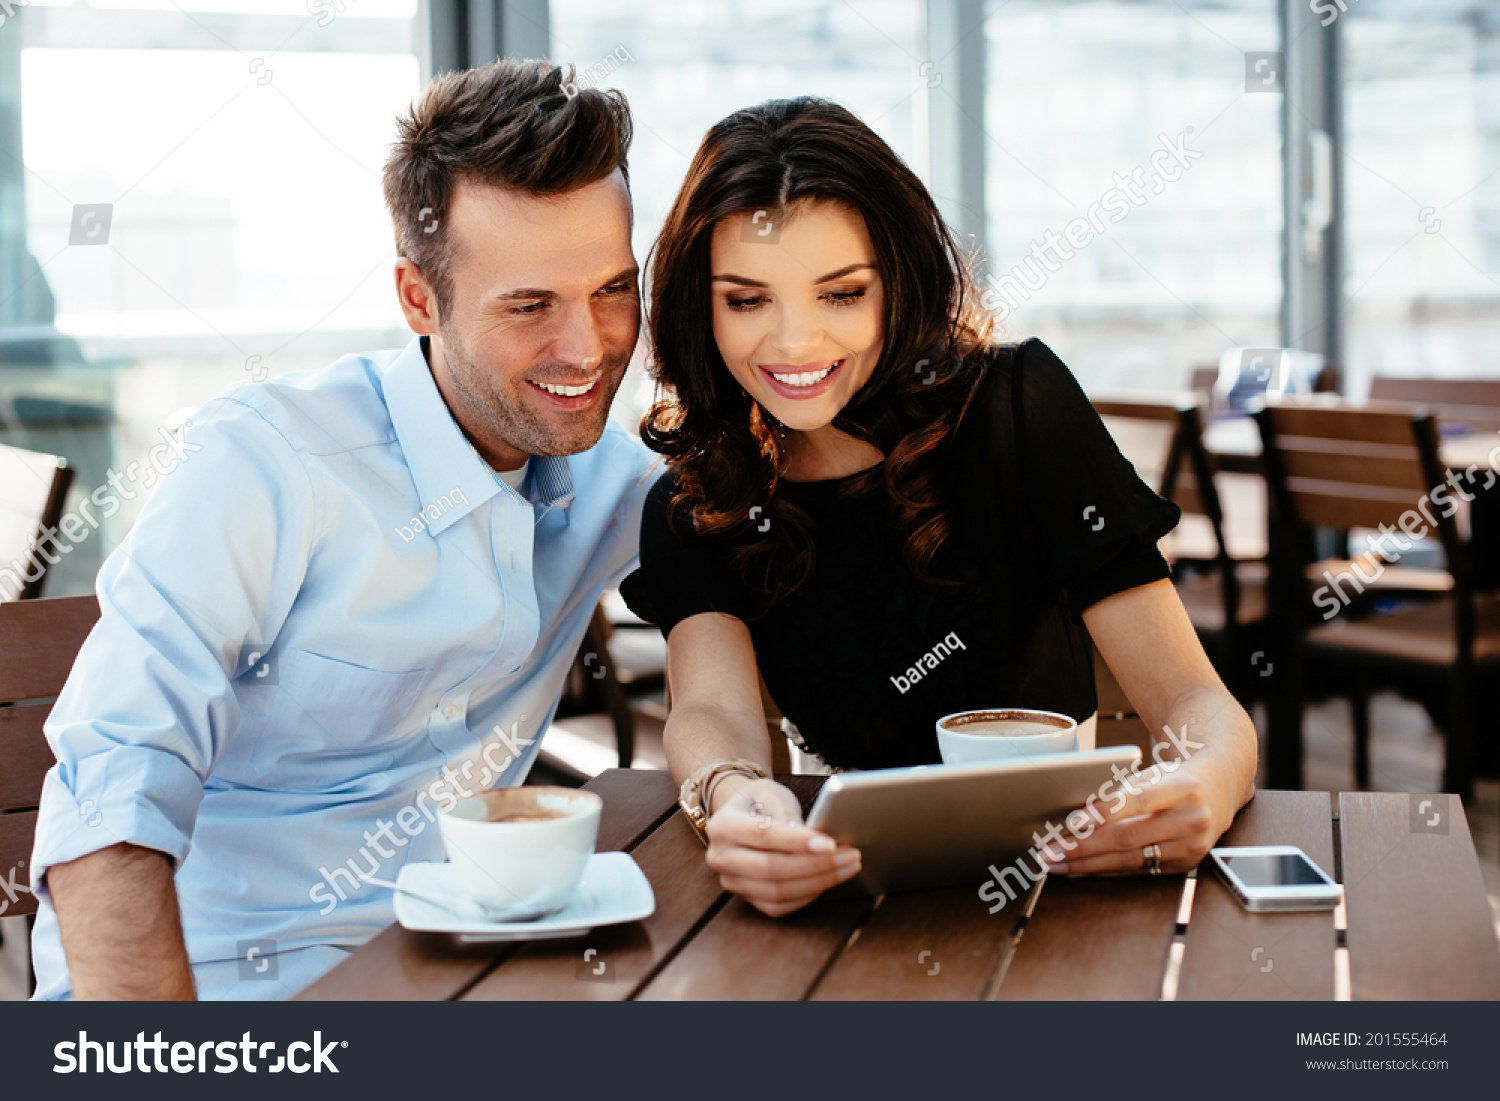 Online dating young professionals